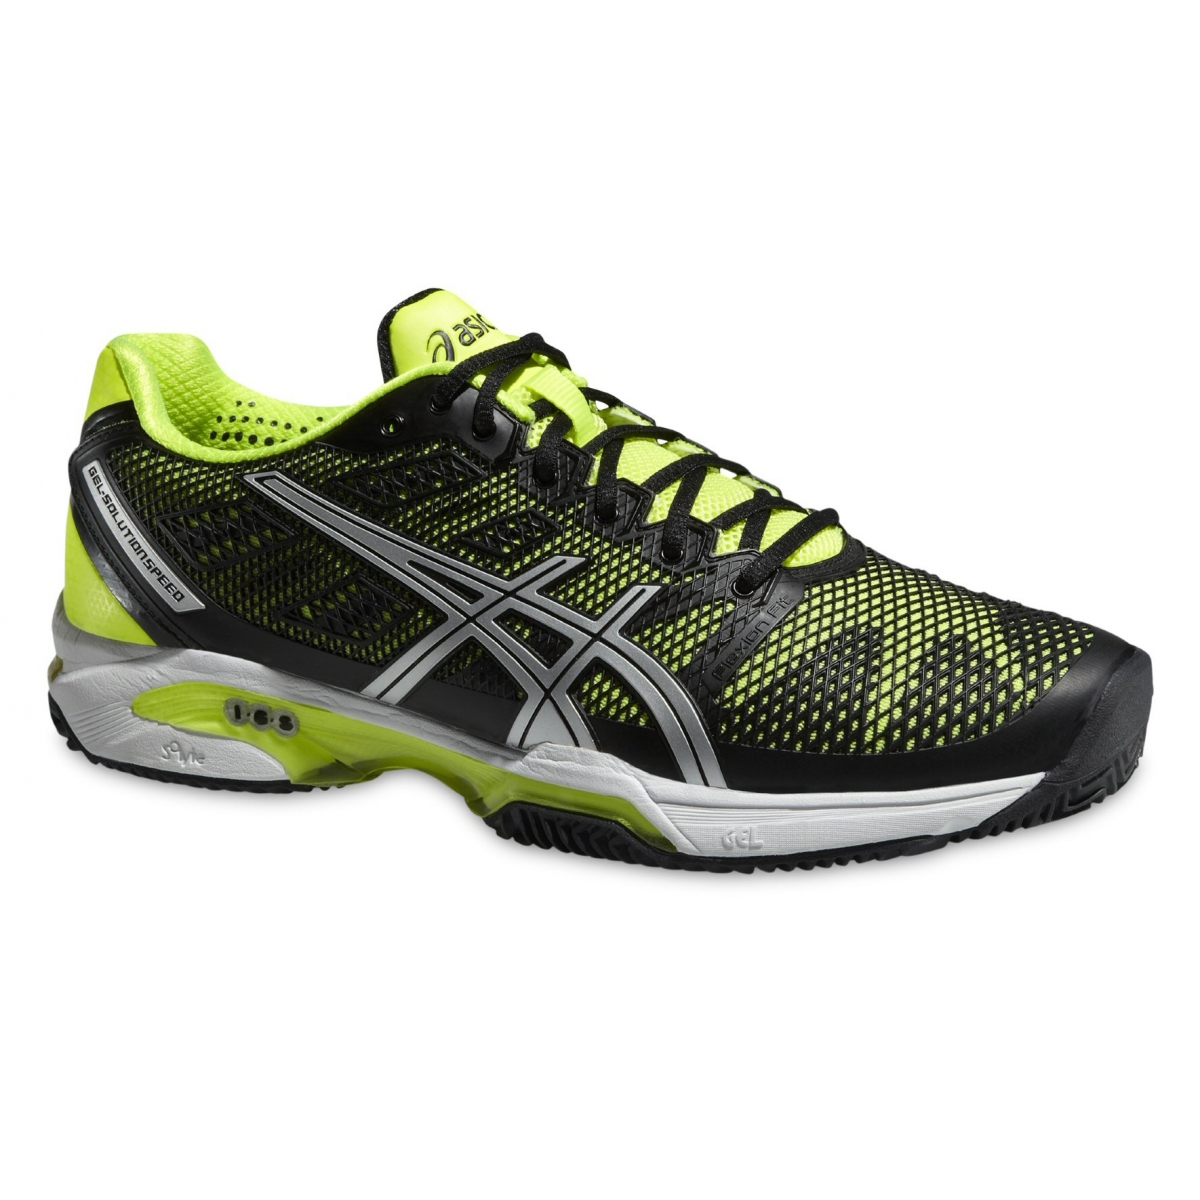 brand new 68a37 89227 Asics Gel Solution Speed 2 Clay schwarz/gelb Tennisschuhe ...